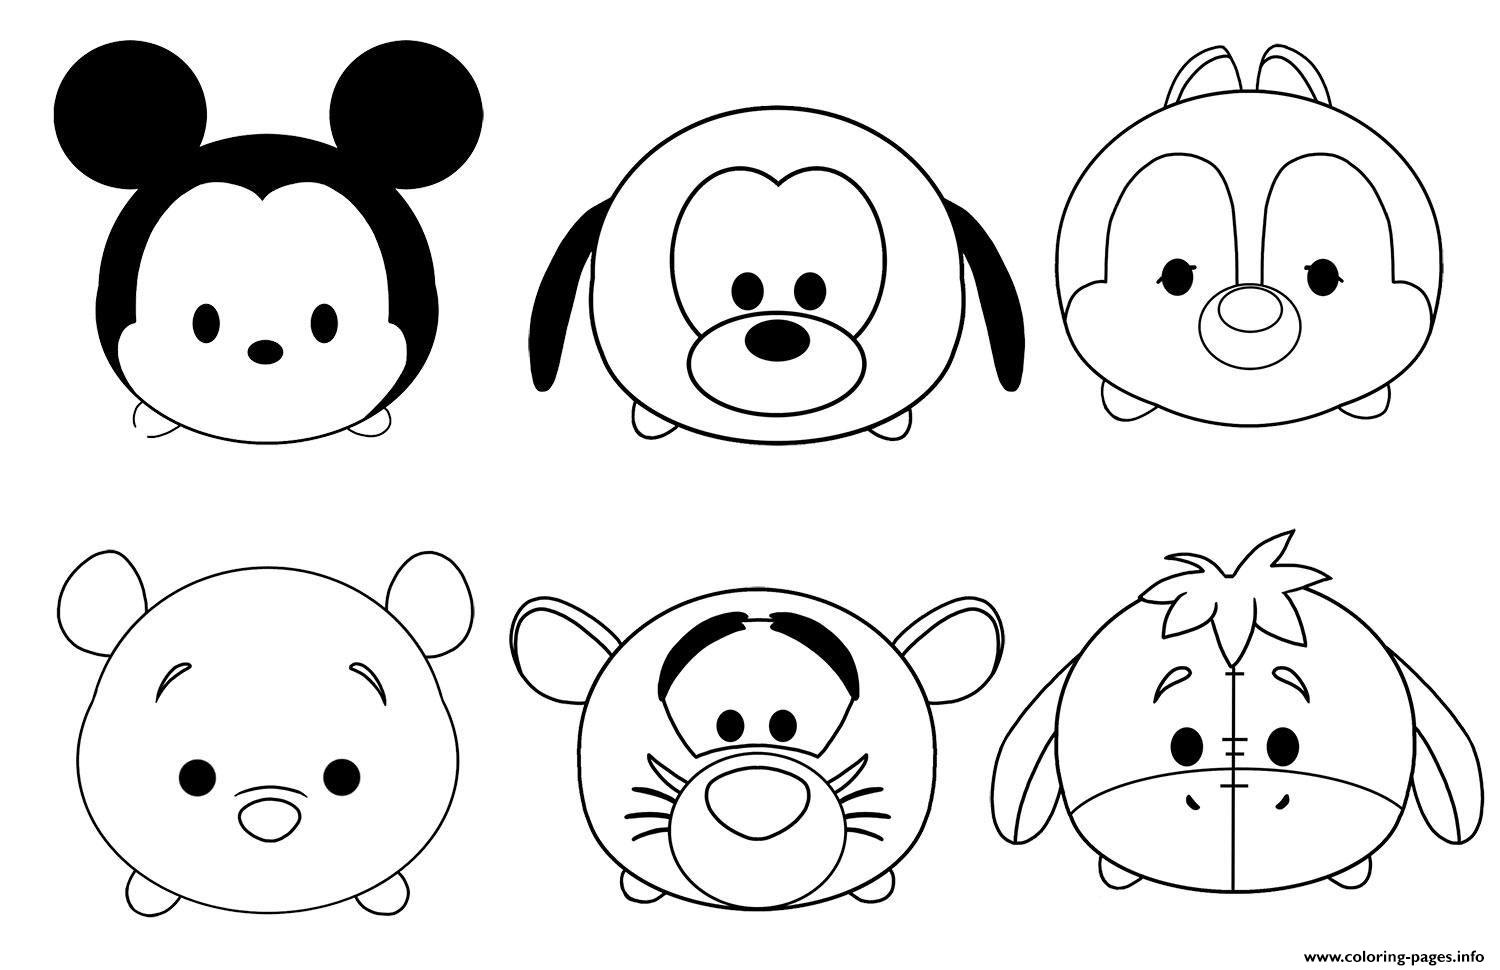 Kawaii Disney Characters Coloring Pages Printable